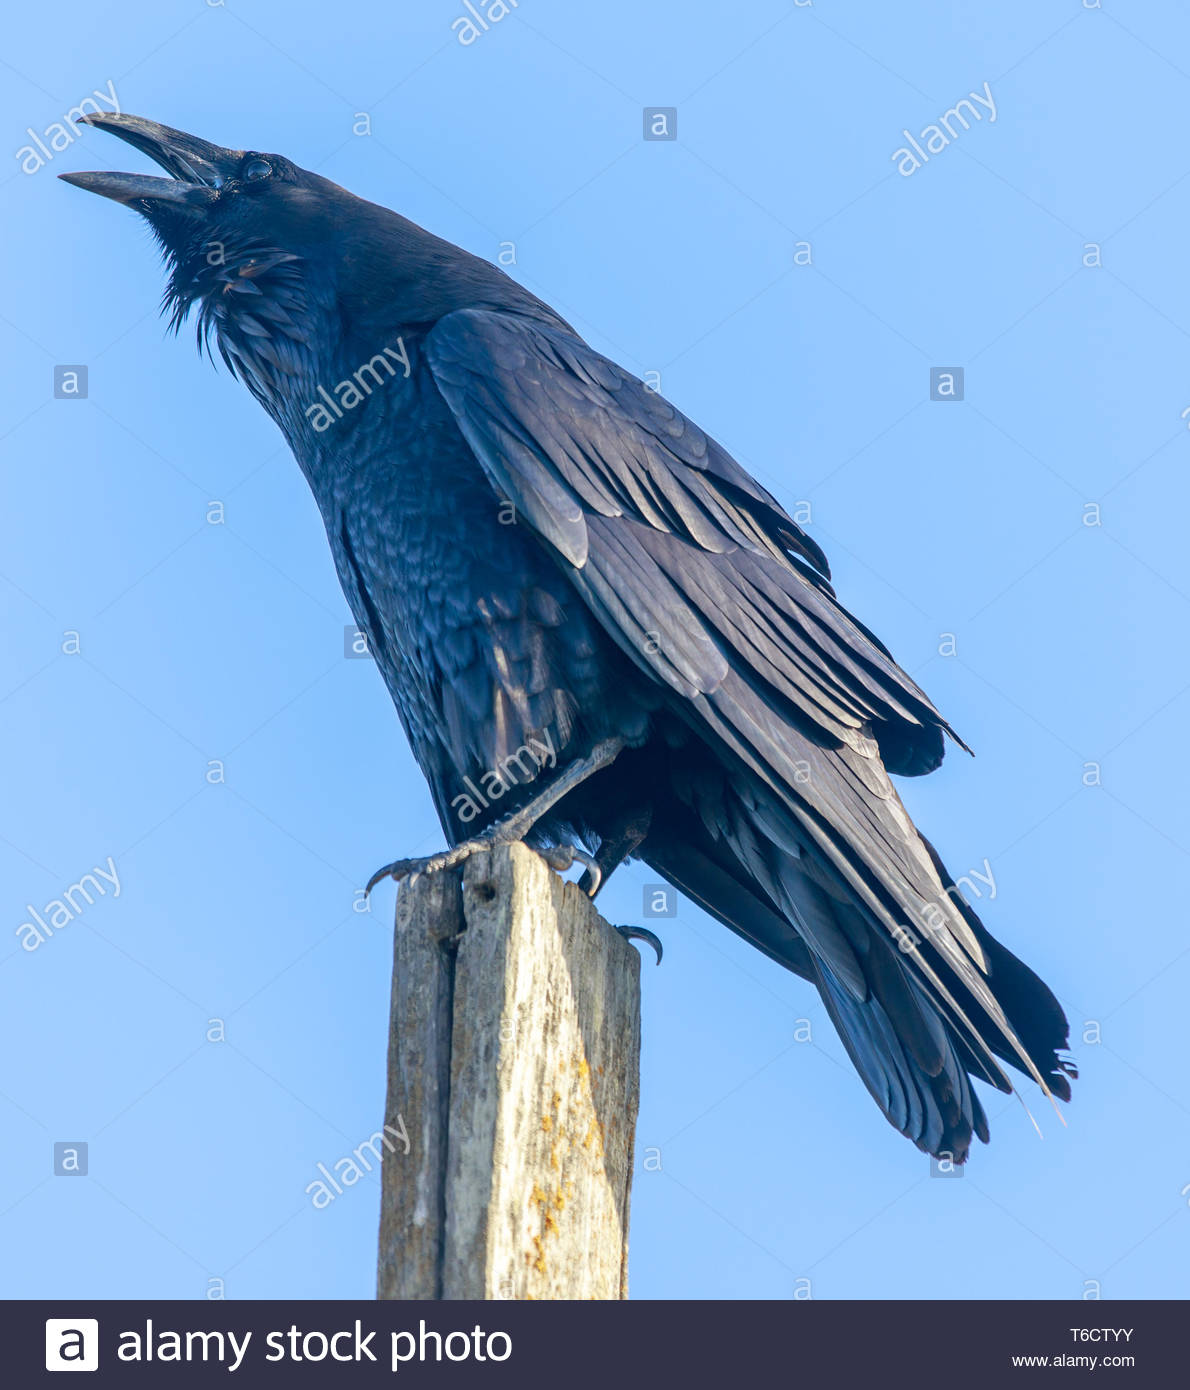 Common Raven (Corvus corax) perched on a pole and croaking. - Stock Image